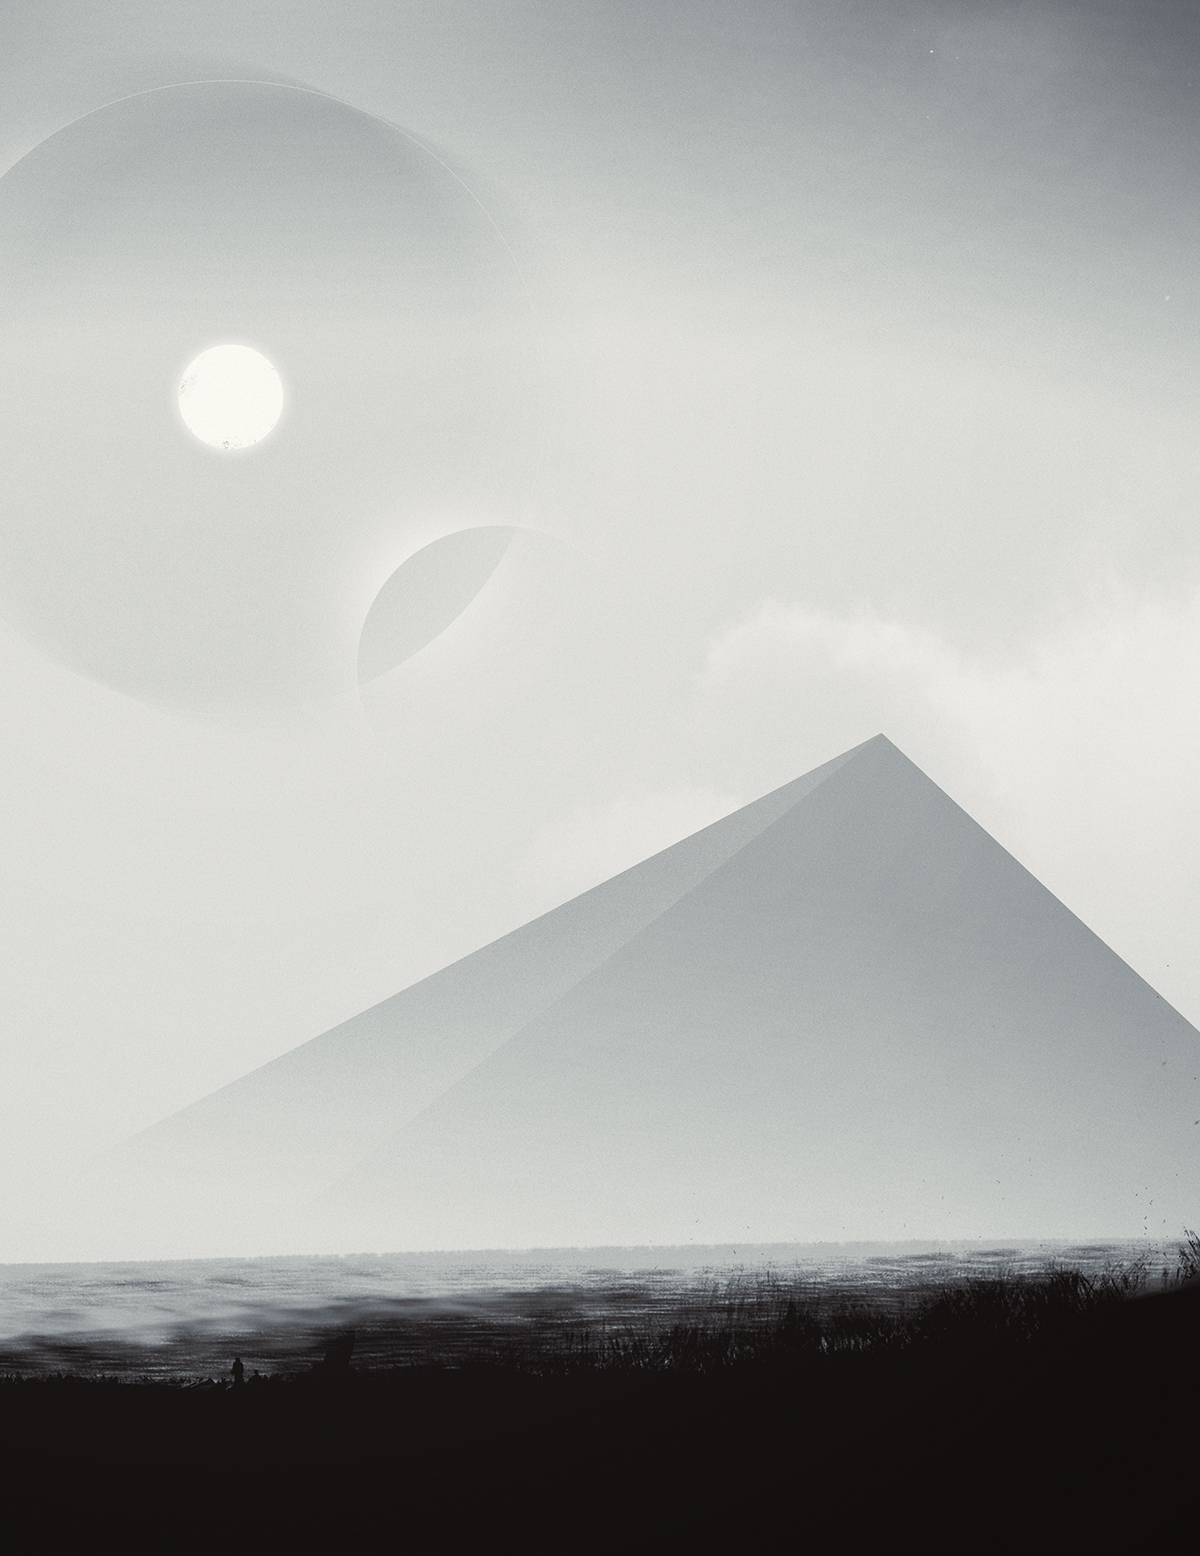 Landscape pyramids Sun stars monochrome black and white Ocean SKY birds DISTORTED lonely dark pessimistic noise Painted